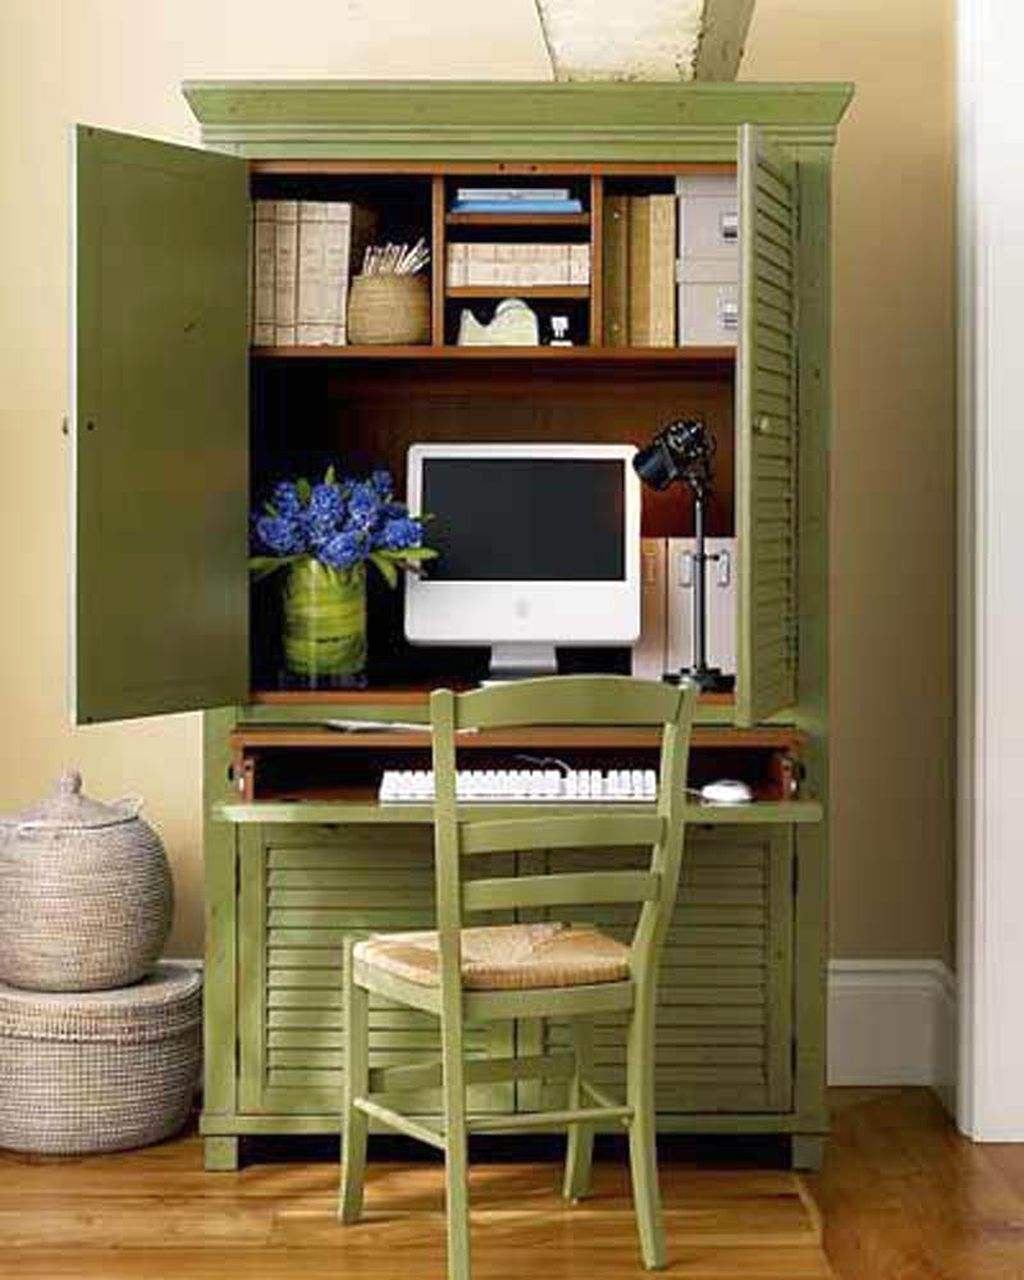 Green cupboard home office design ideas for small spaces Small office makeover ideas